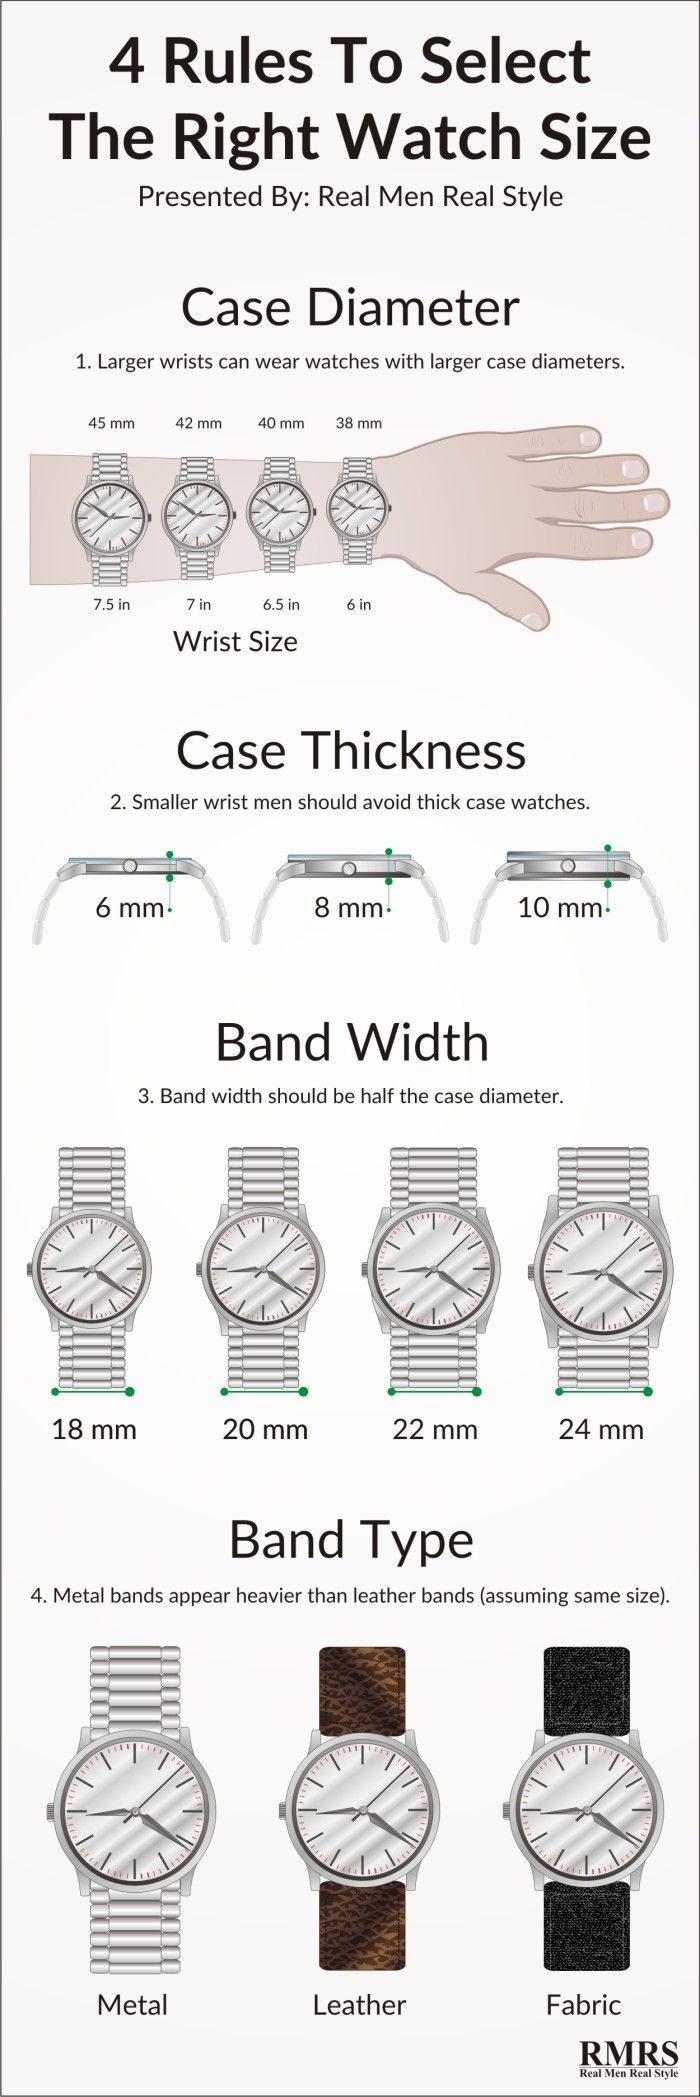 How To Buy The Right Sized Watch  #Style #Fashion #Menswear Re-pinned by www.avacationrental4me.com